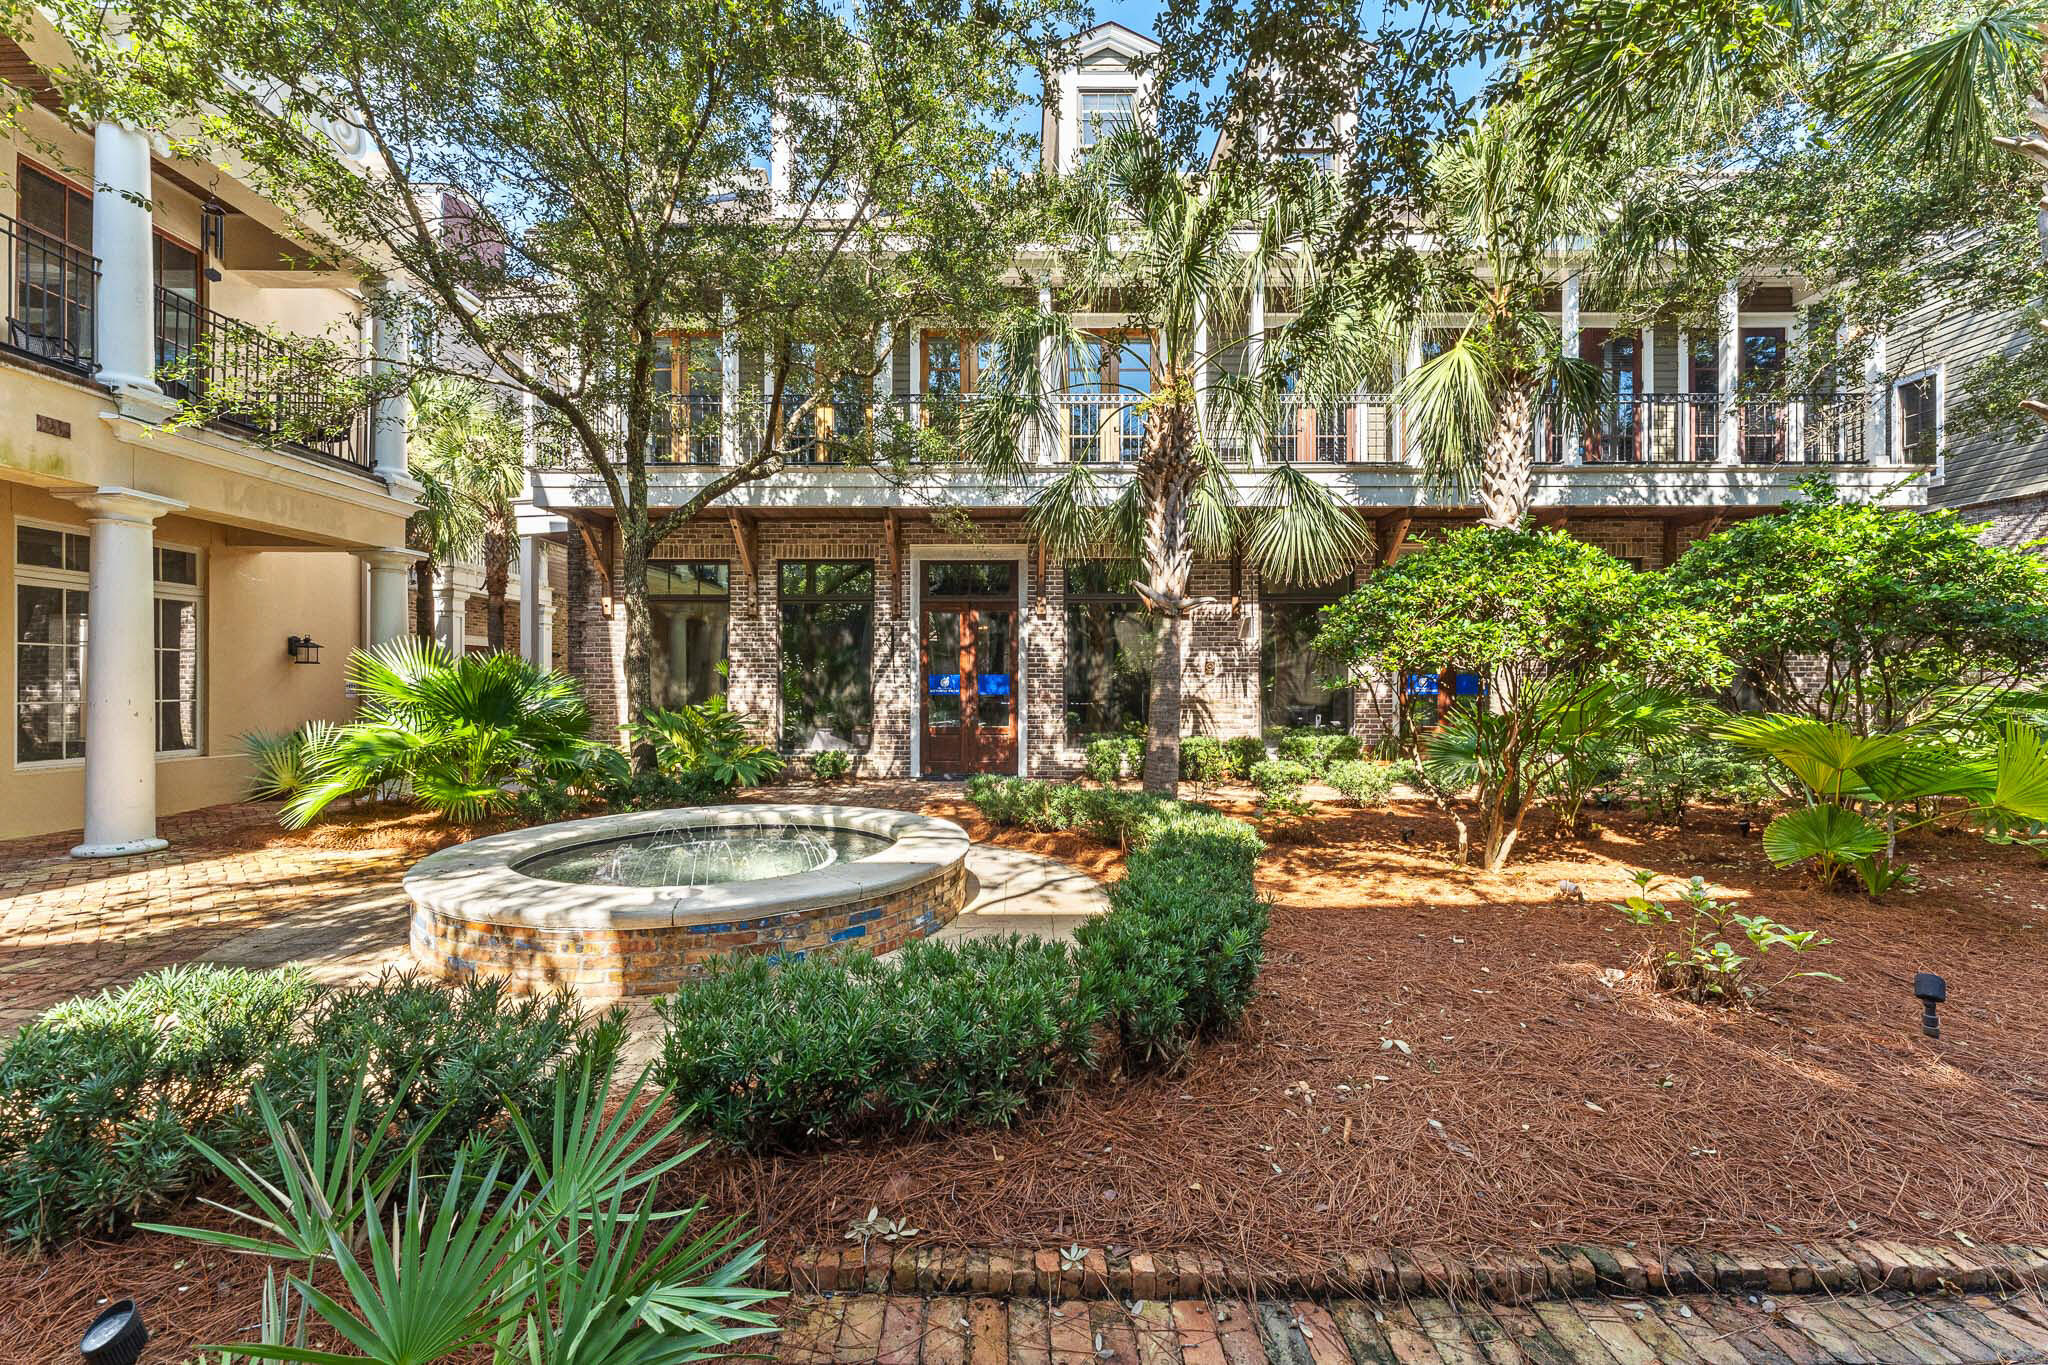 A WHOPPING 1752 sq. ft. loft condo ideally located above the unique boutique shops in The pedestrian Village of Baytowne Wharf. New Orleans inspired wrap around deck overlooking all that the Village has to offer, close to all the action - dining, shopping, conference /meeting facility and nearby beaches, golf,  tennis and fishing. Gross income for the past 6 months was $33,208. This is a luxurious setting boasting Chicago brick floors on the main level with 8' solid mahogany doors leading off to the wrap around porch  for a delightful getaway from the world. Offered fully furnished and turn-key ready!